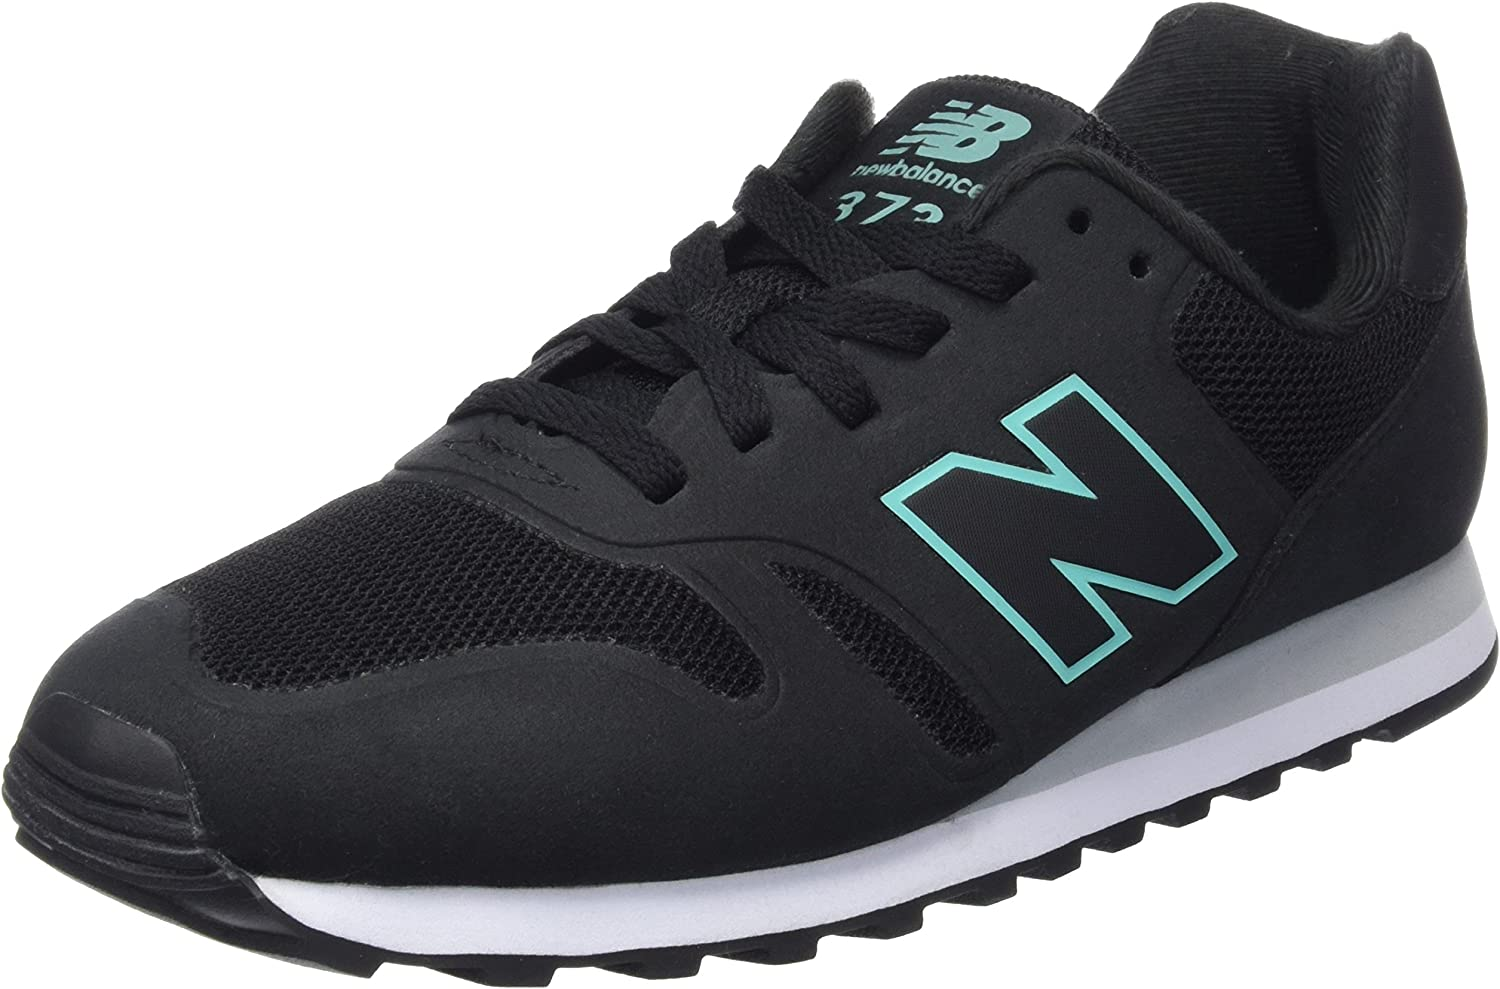 New Balance Men's Wd373v1 Low-Top Sneakers